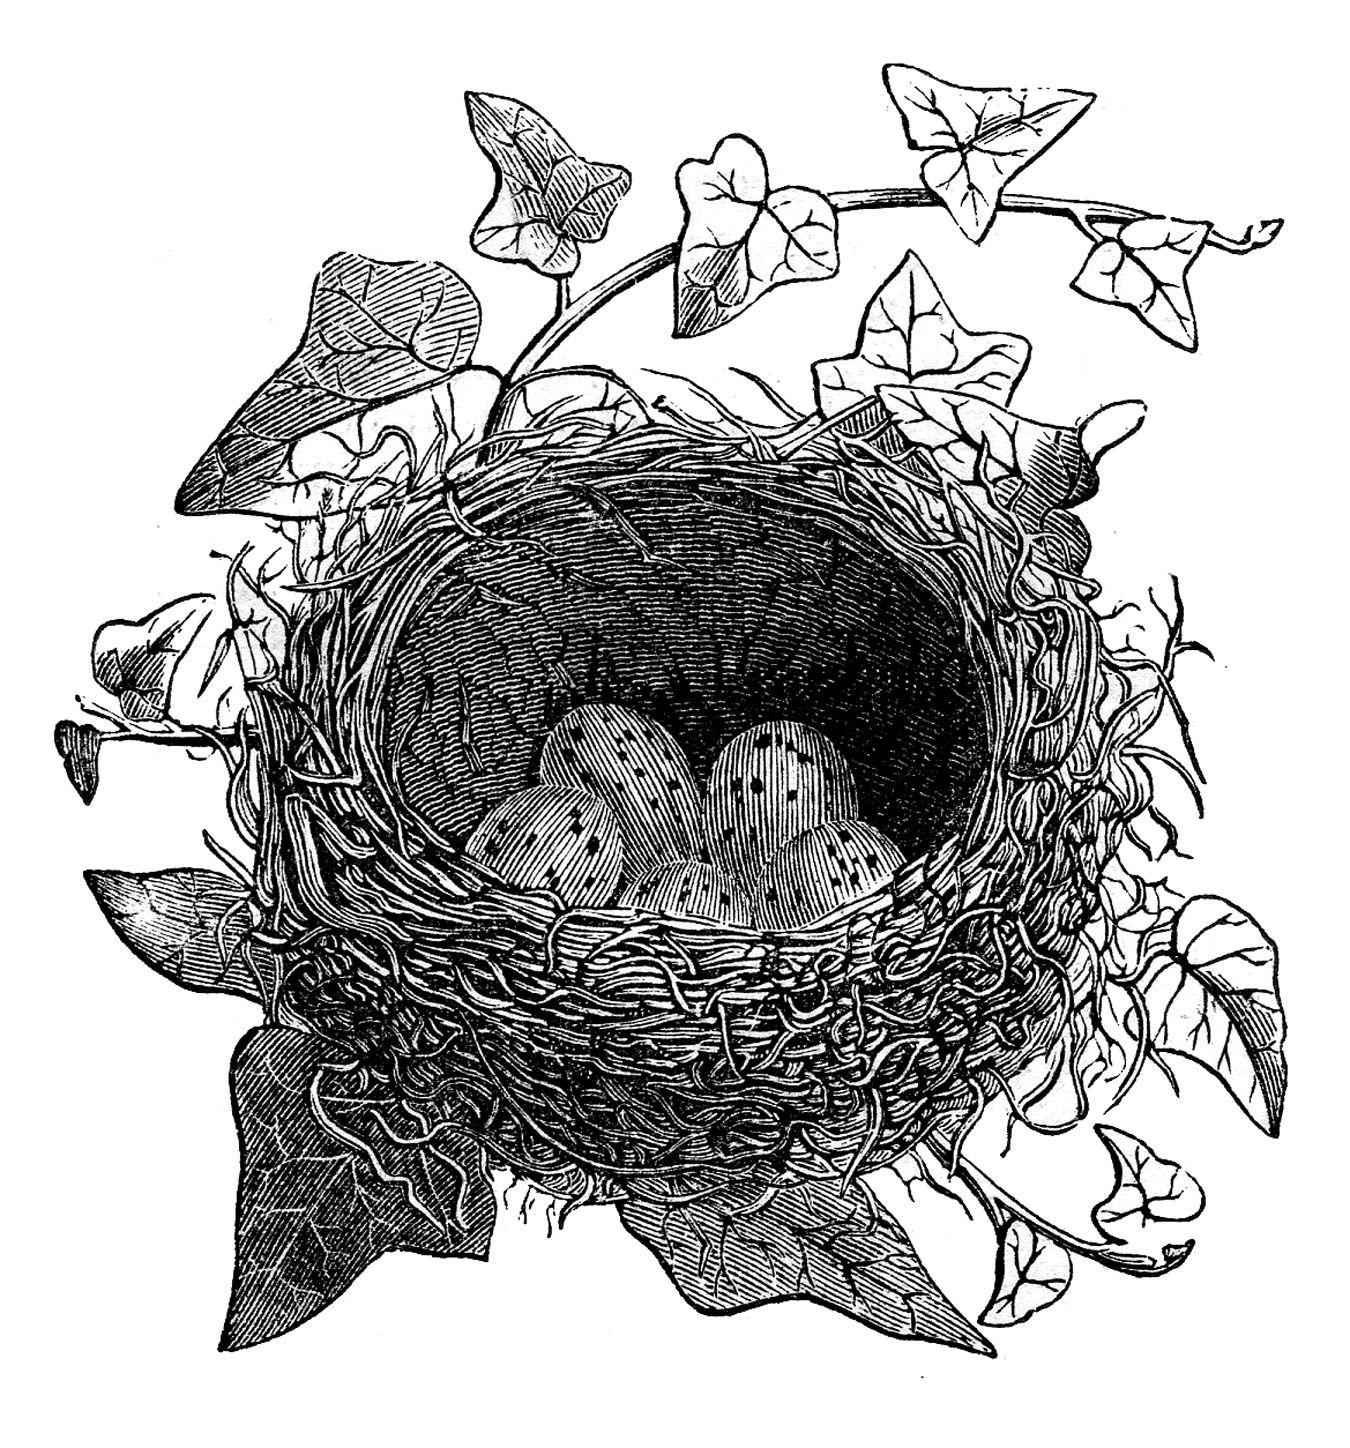 Drawing printout how to draw a bird nest - Vintage Clip Art Birds And Nest Engravings